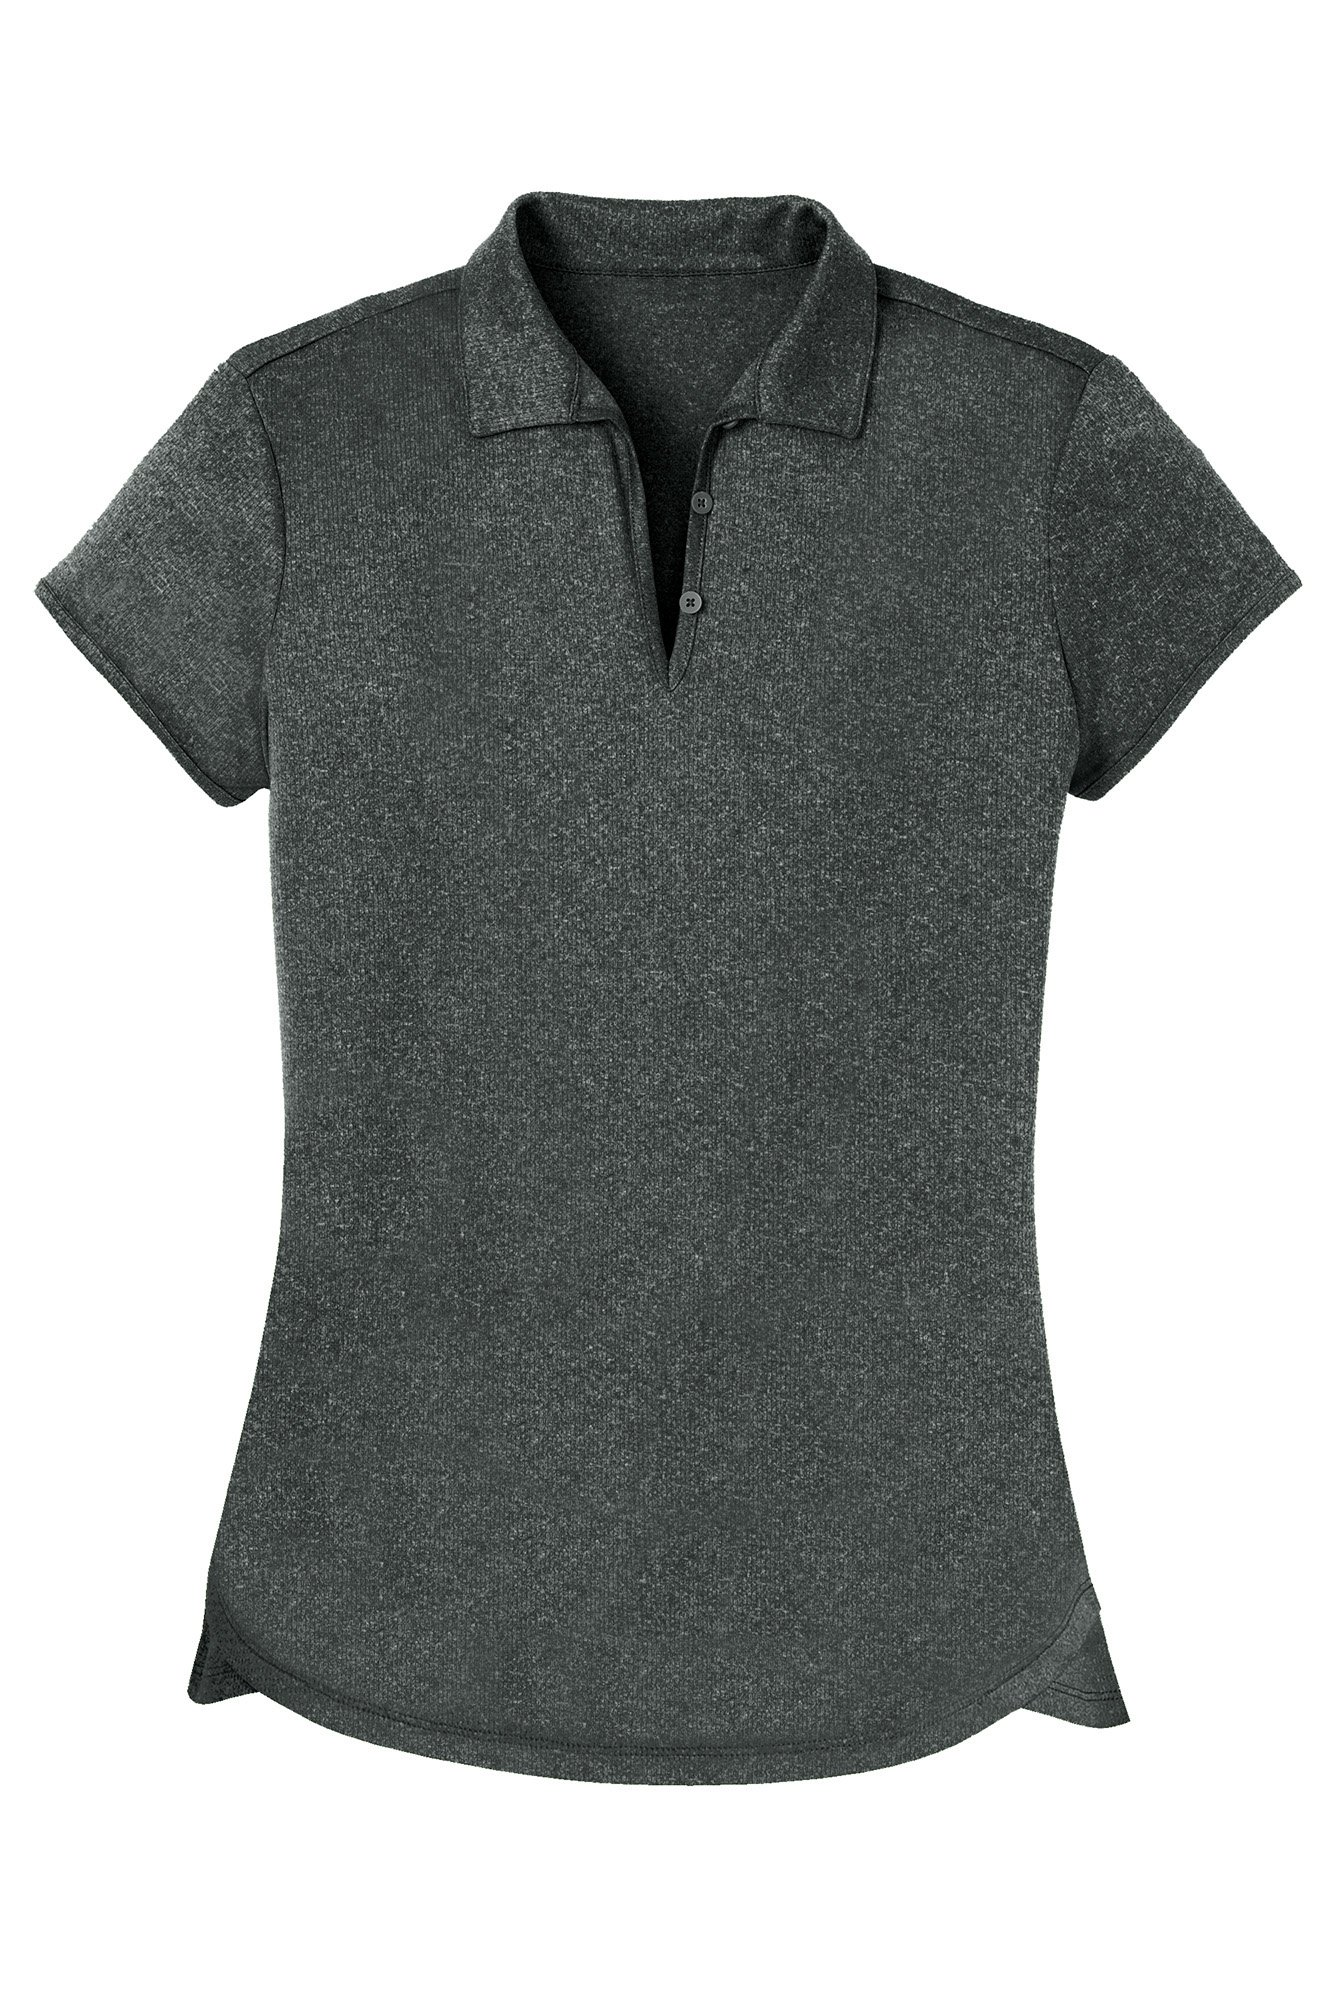 Opna Women's Ladies Moisture Wicking Athletic Golf Polo Shirts Tops & Tees Charcoal by Opna